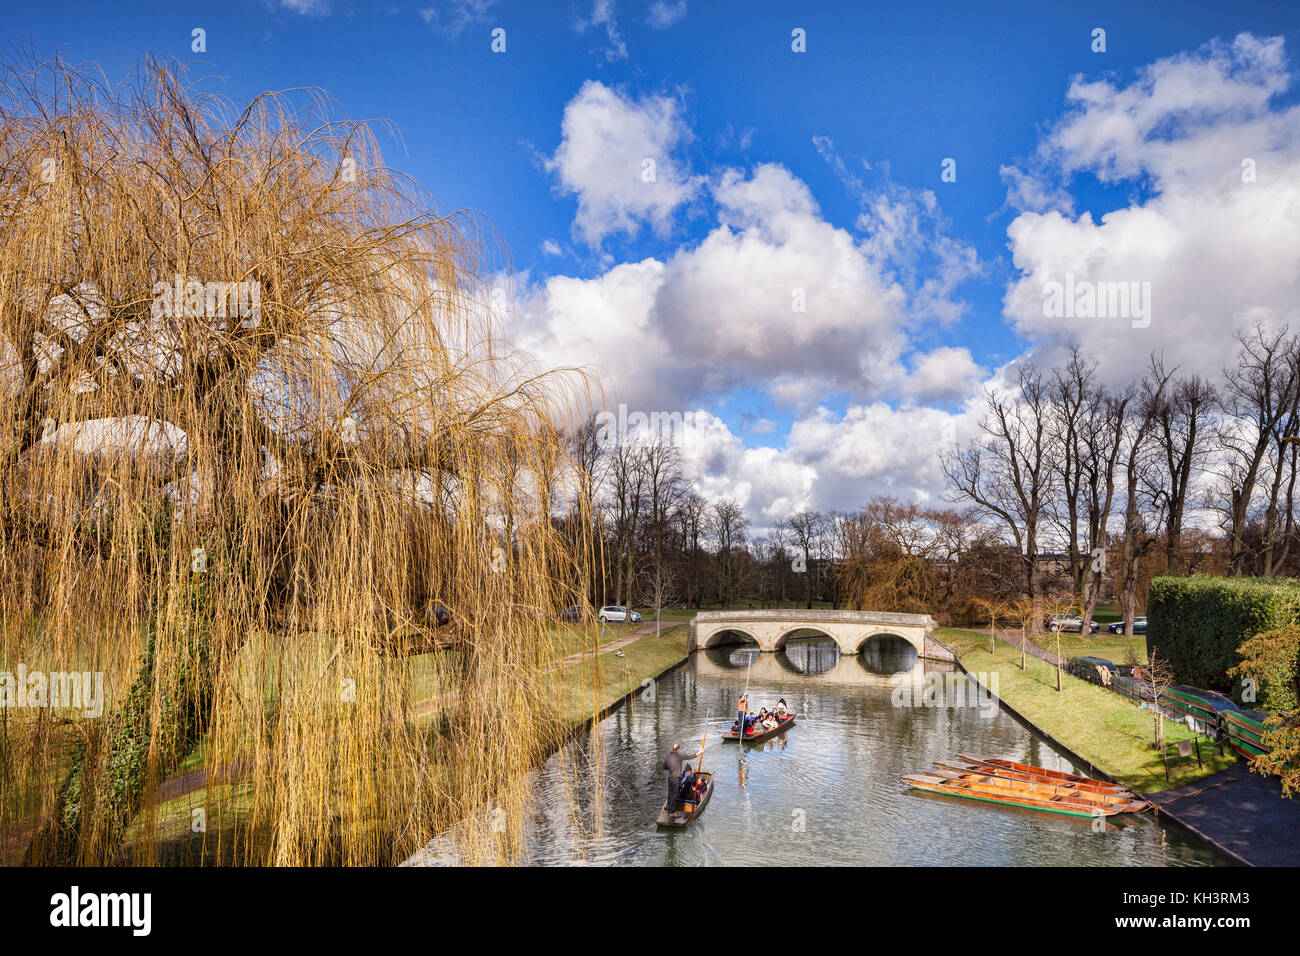 Punts on the River Cam in Cambridge through the grounds of Trinity College. - Stock Image